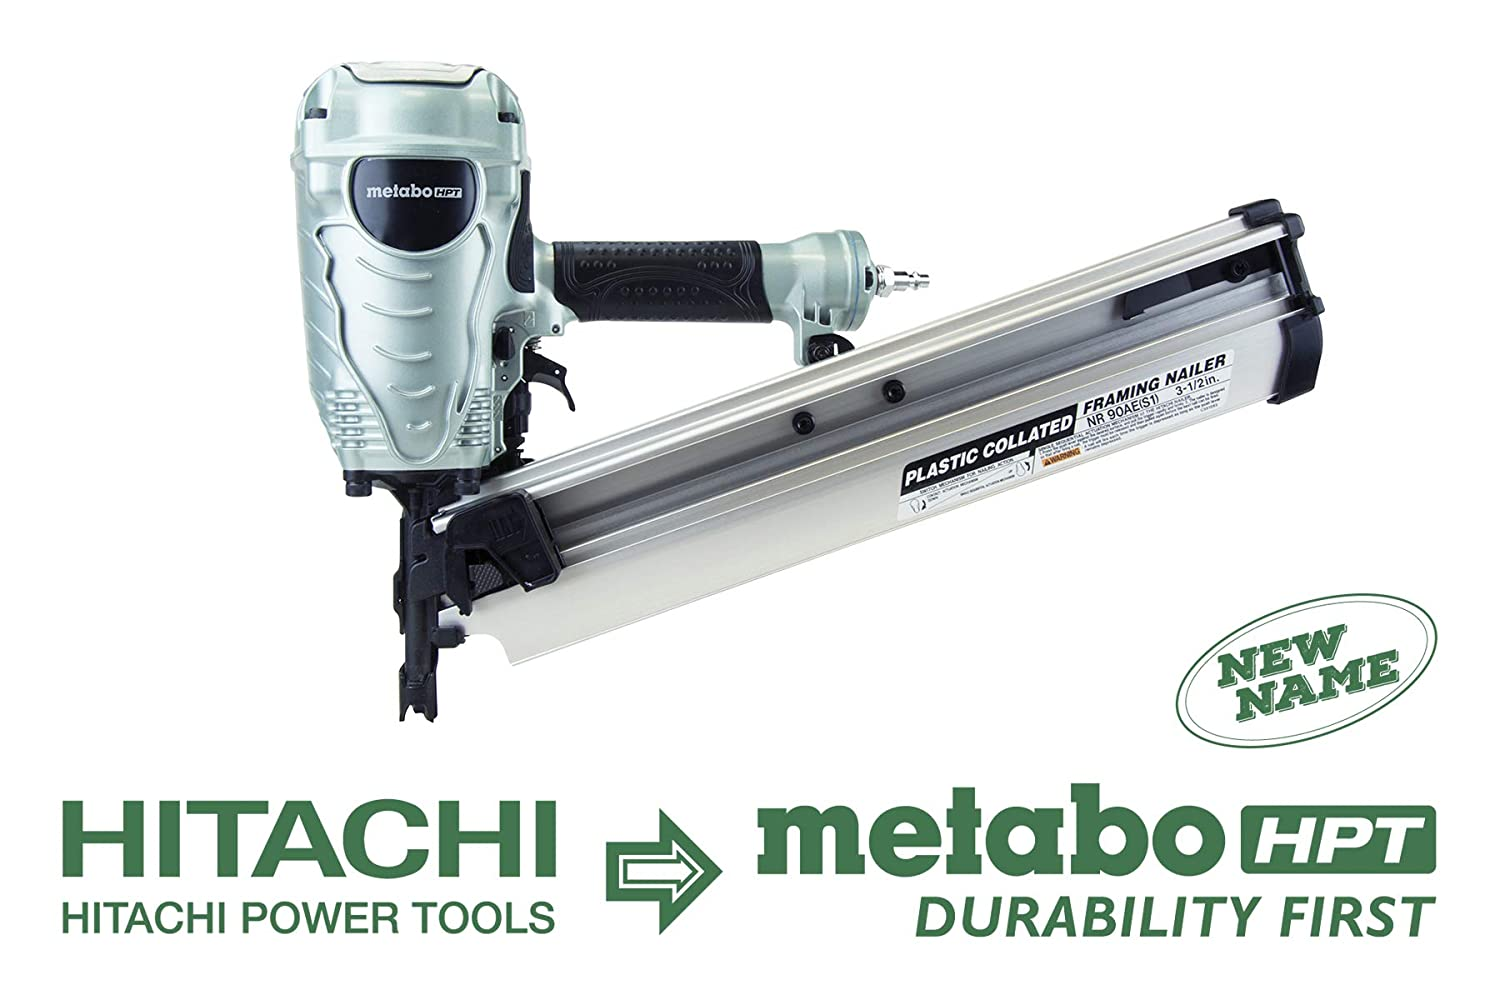 Metabo HPT NR90AES1 21 Degree Pneumatic Framing Nailer, The Preferred Pro Brand of Pneumatic Nailers, Lightweight and Well-balanced, Easy Depth Adjustment, Accepts 2 to 3-1 2 Collated Framing Nails